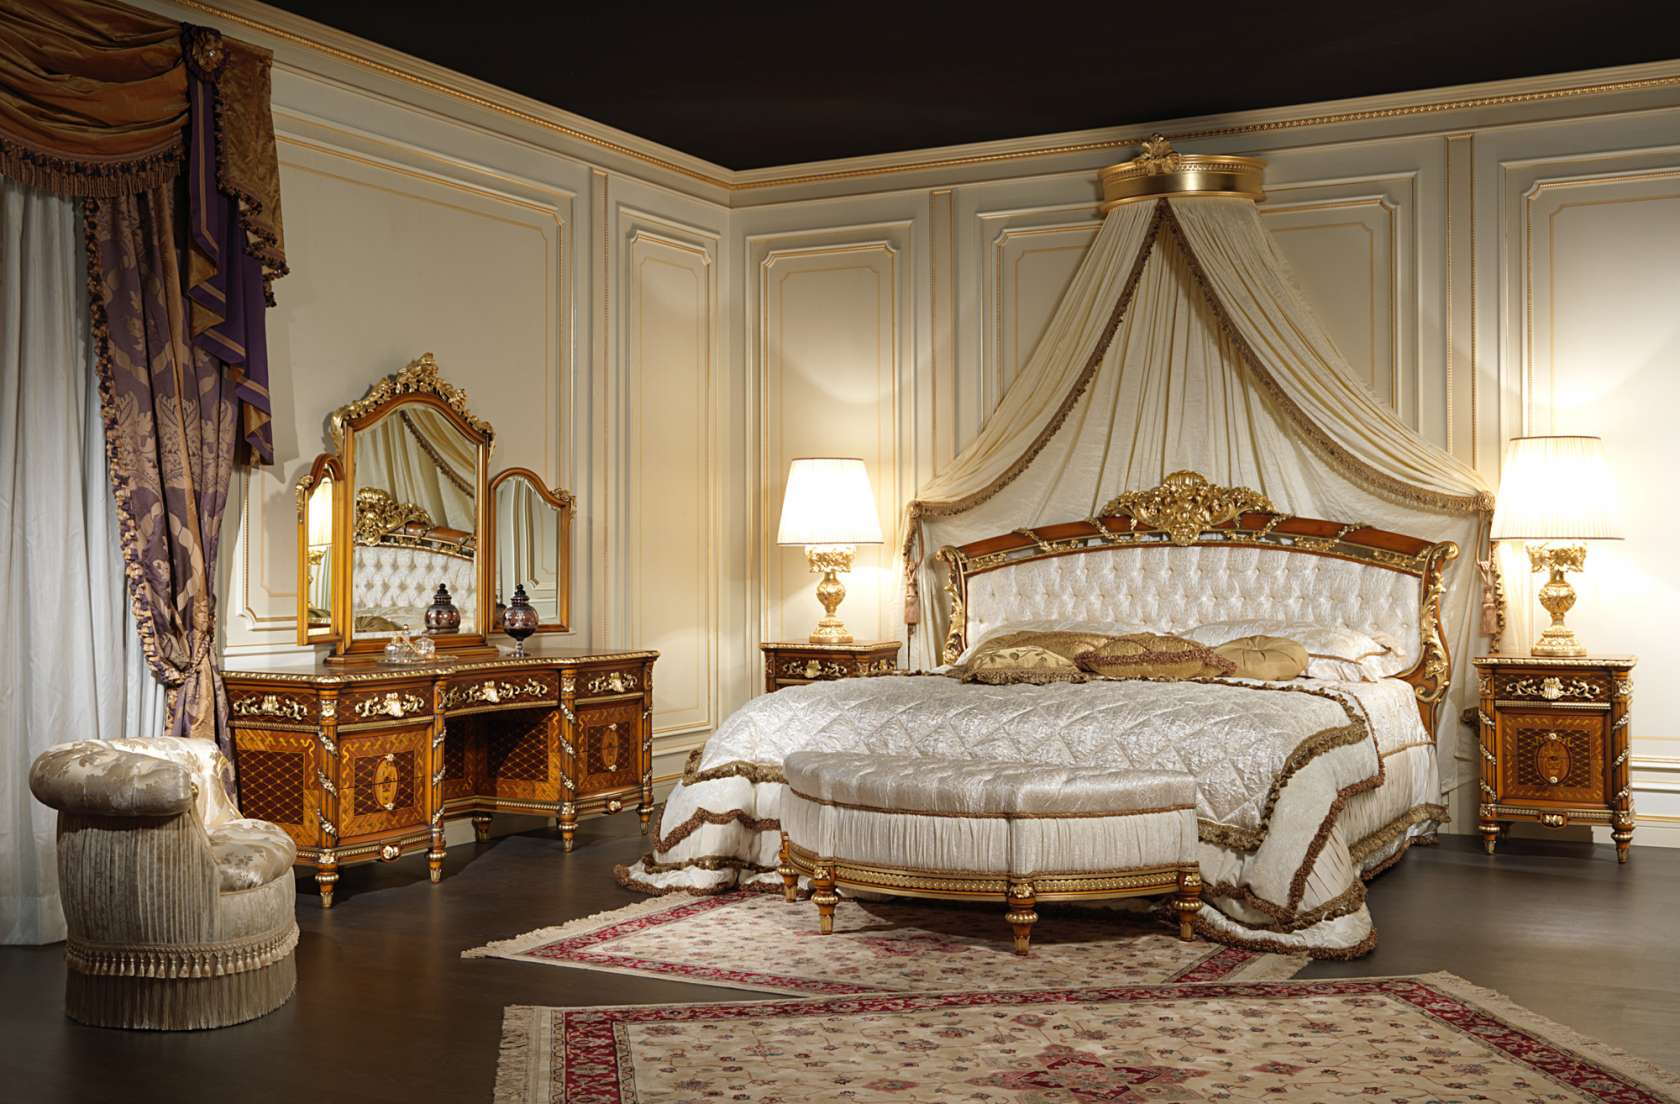 Double bed in walnut for the Louis XVI collection Noce e Intarsi. Walnut bedroom furniture Louis XVI Noce e Intarsi art  2011